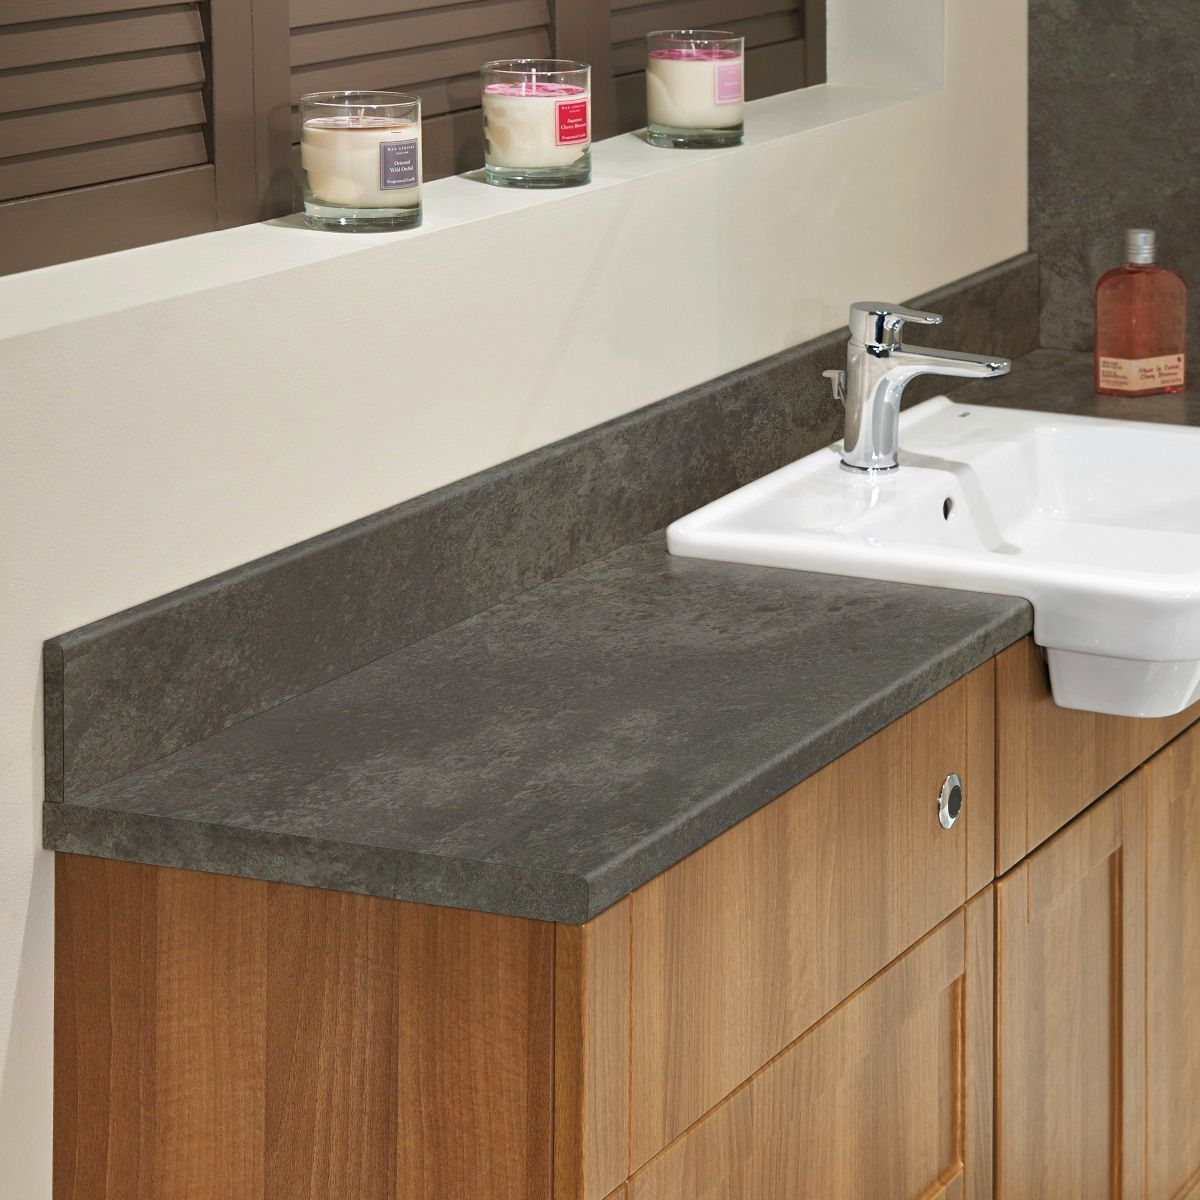 Bushboard Nuance 360mm Slim Laminate Worktop Uk Bathrooms